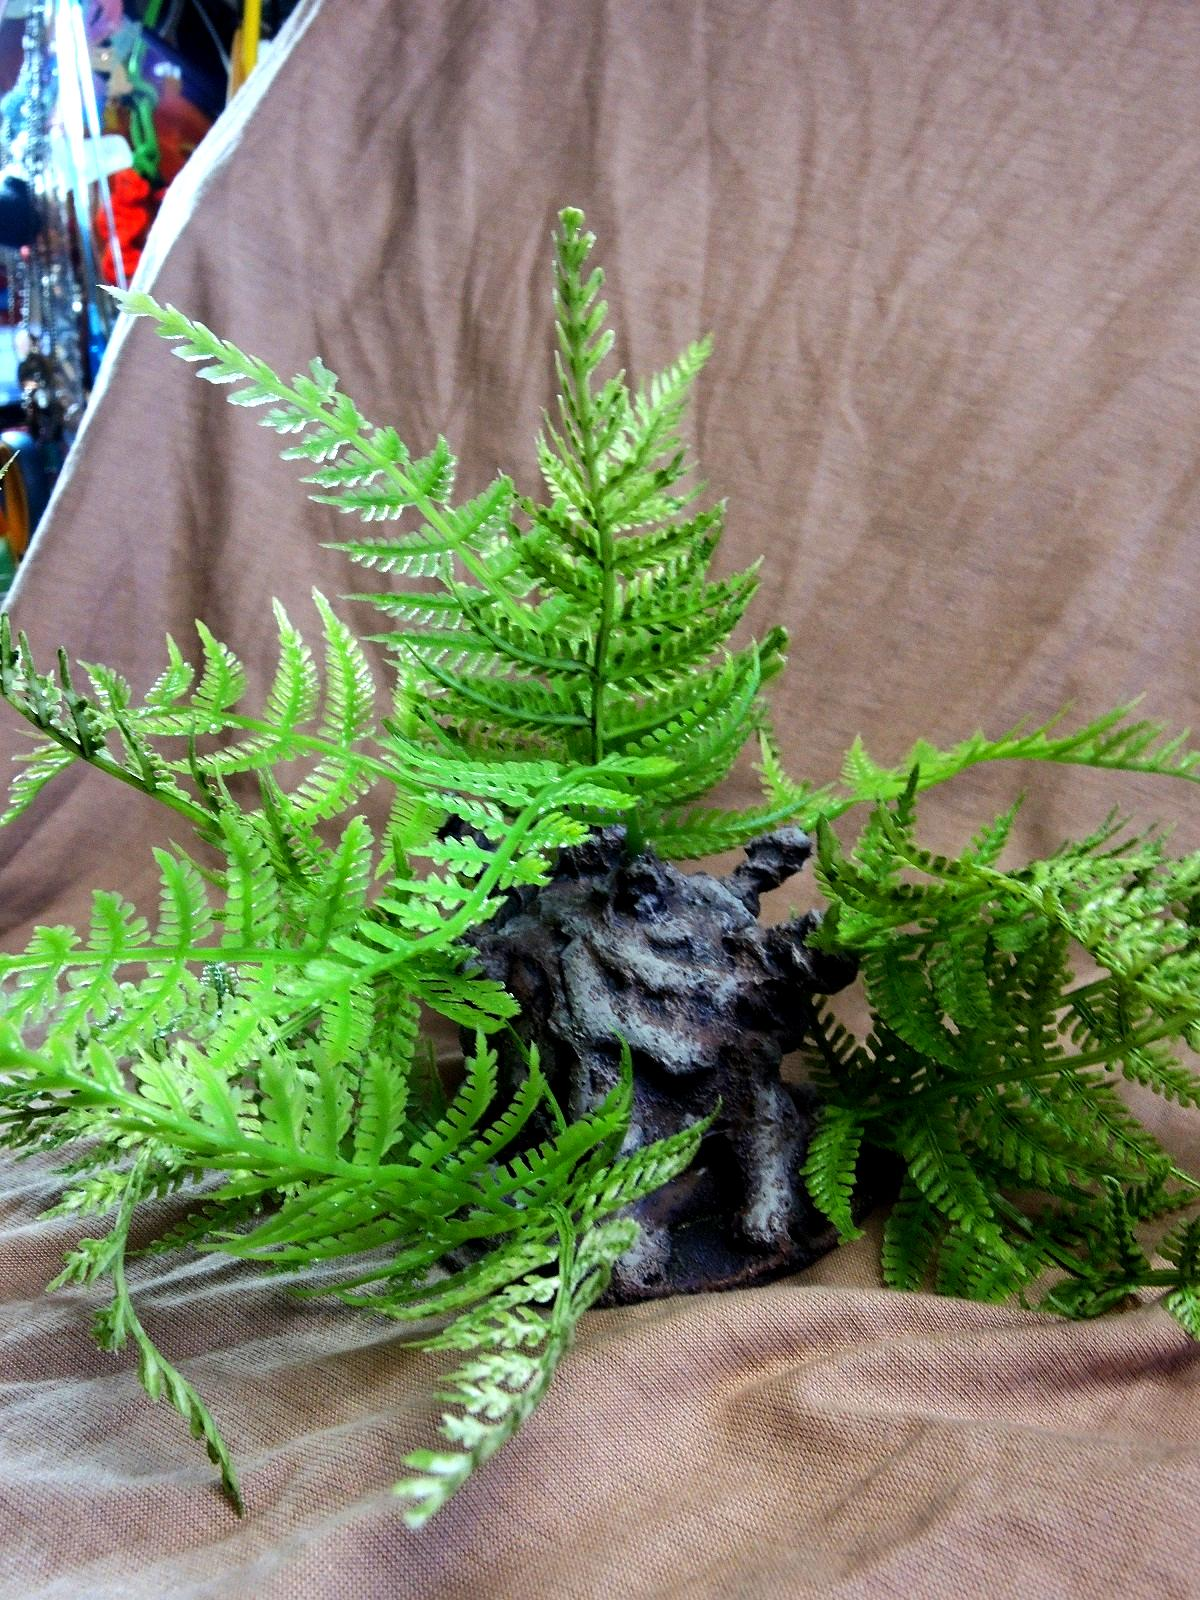 Fern Ball, Jungles, Scratch Build, Terrain, Waaazag, Work In Progress